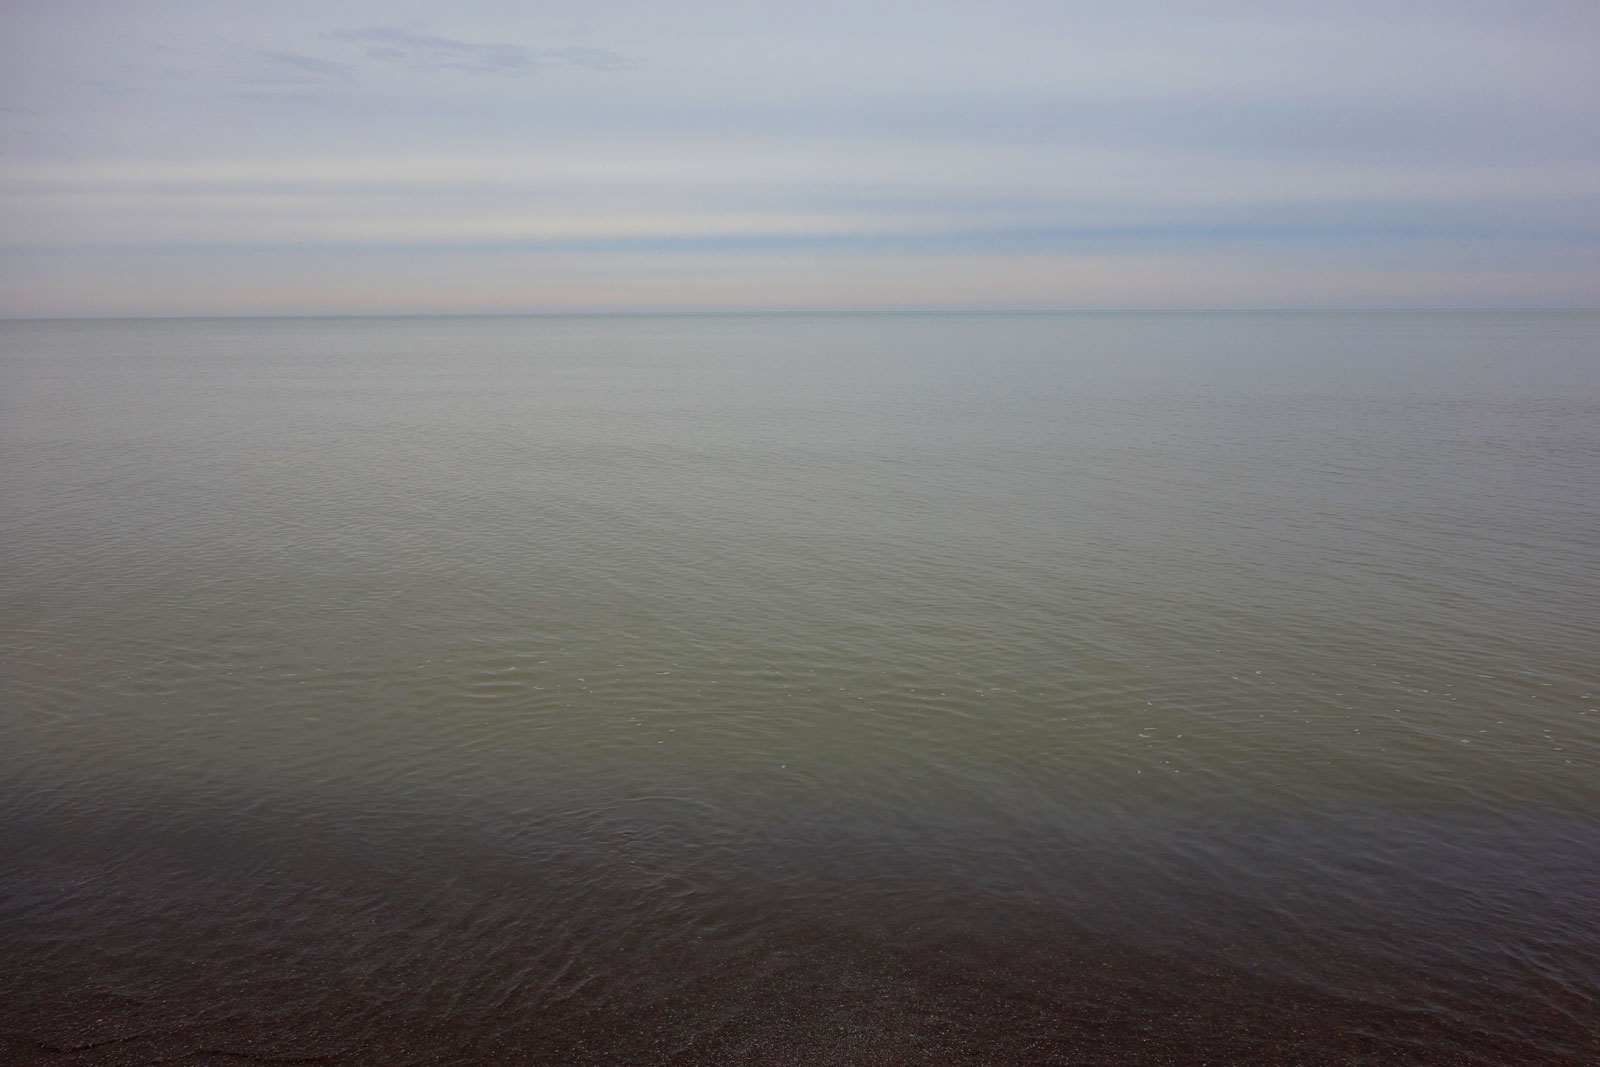 Lake Ontario at Durand Eastman Beach on New Year's Eve 2018